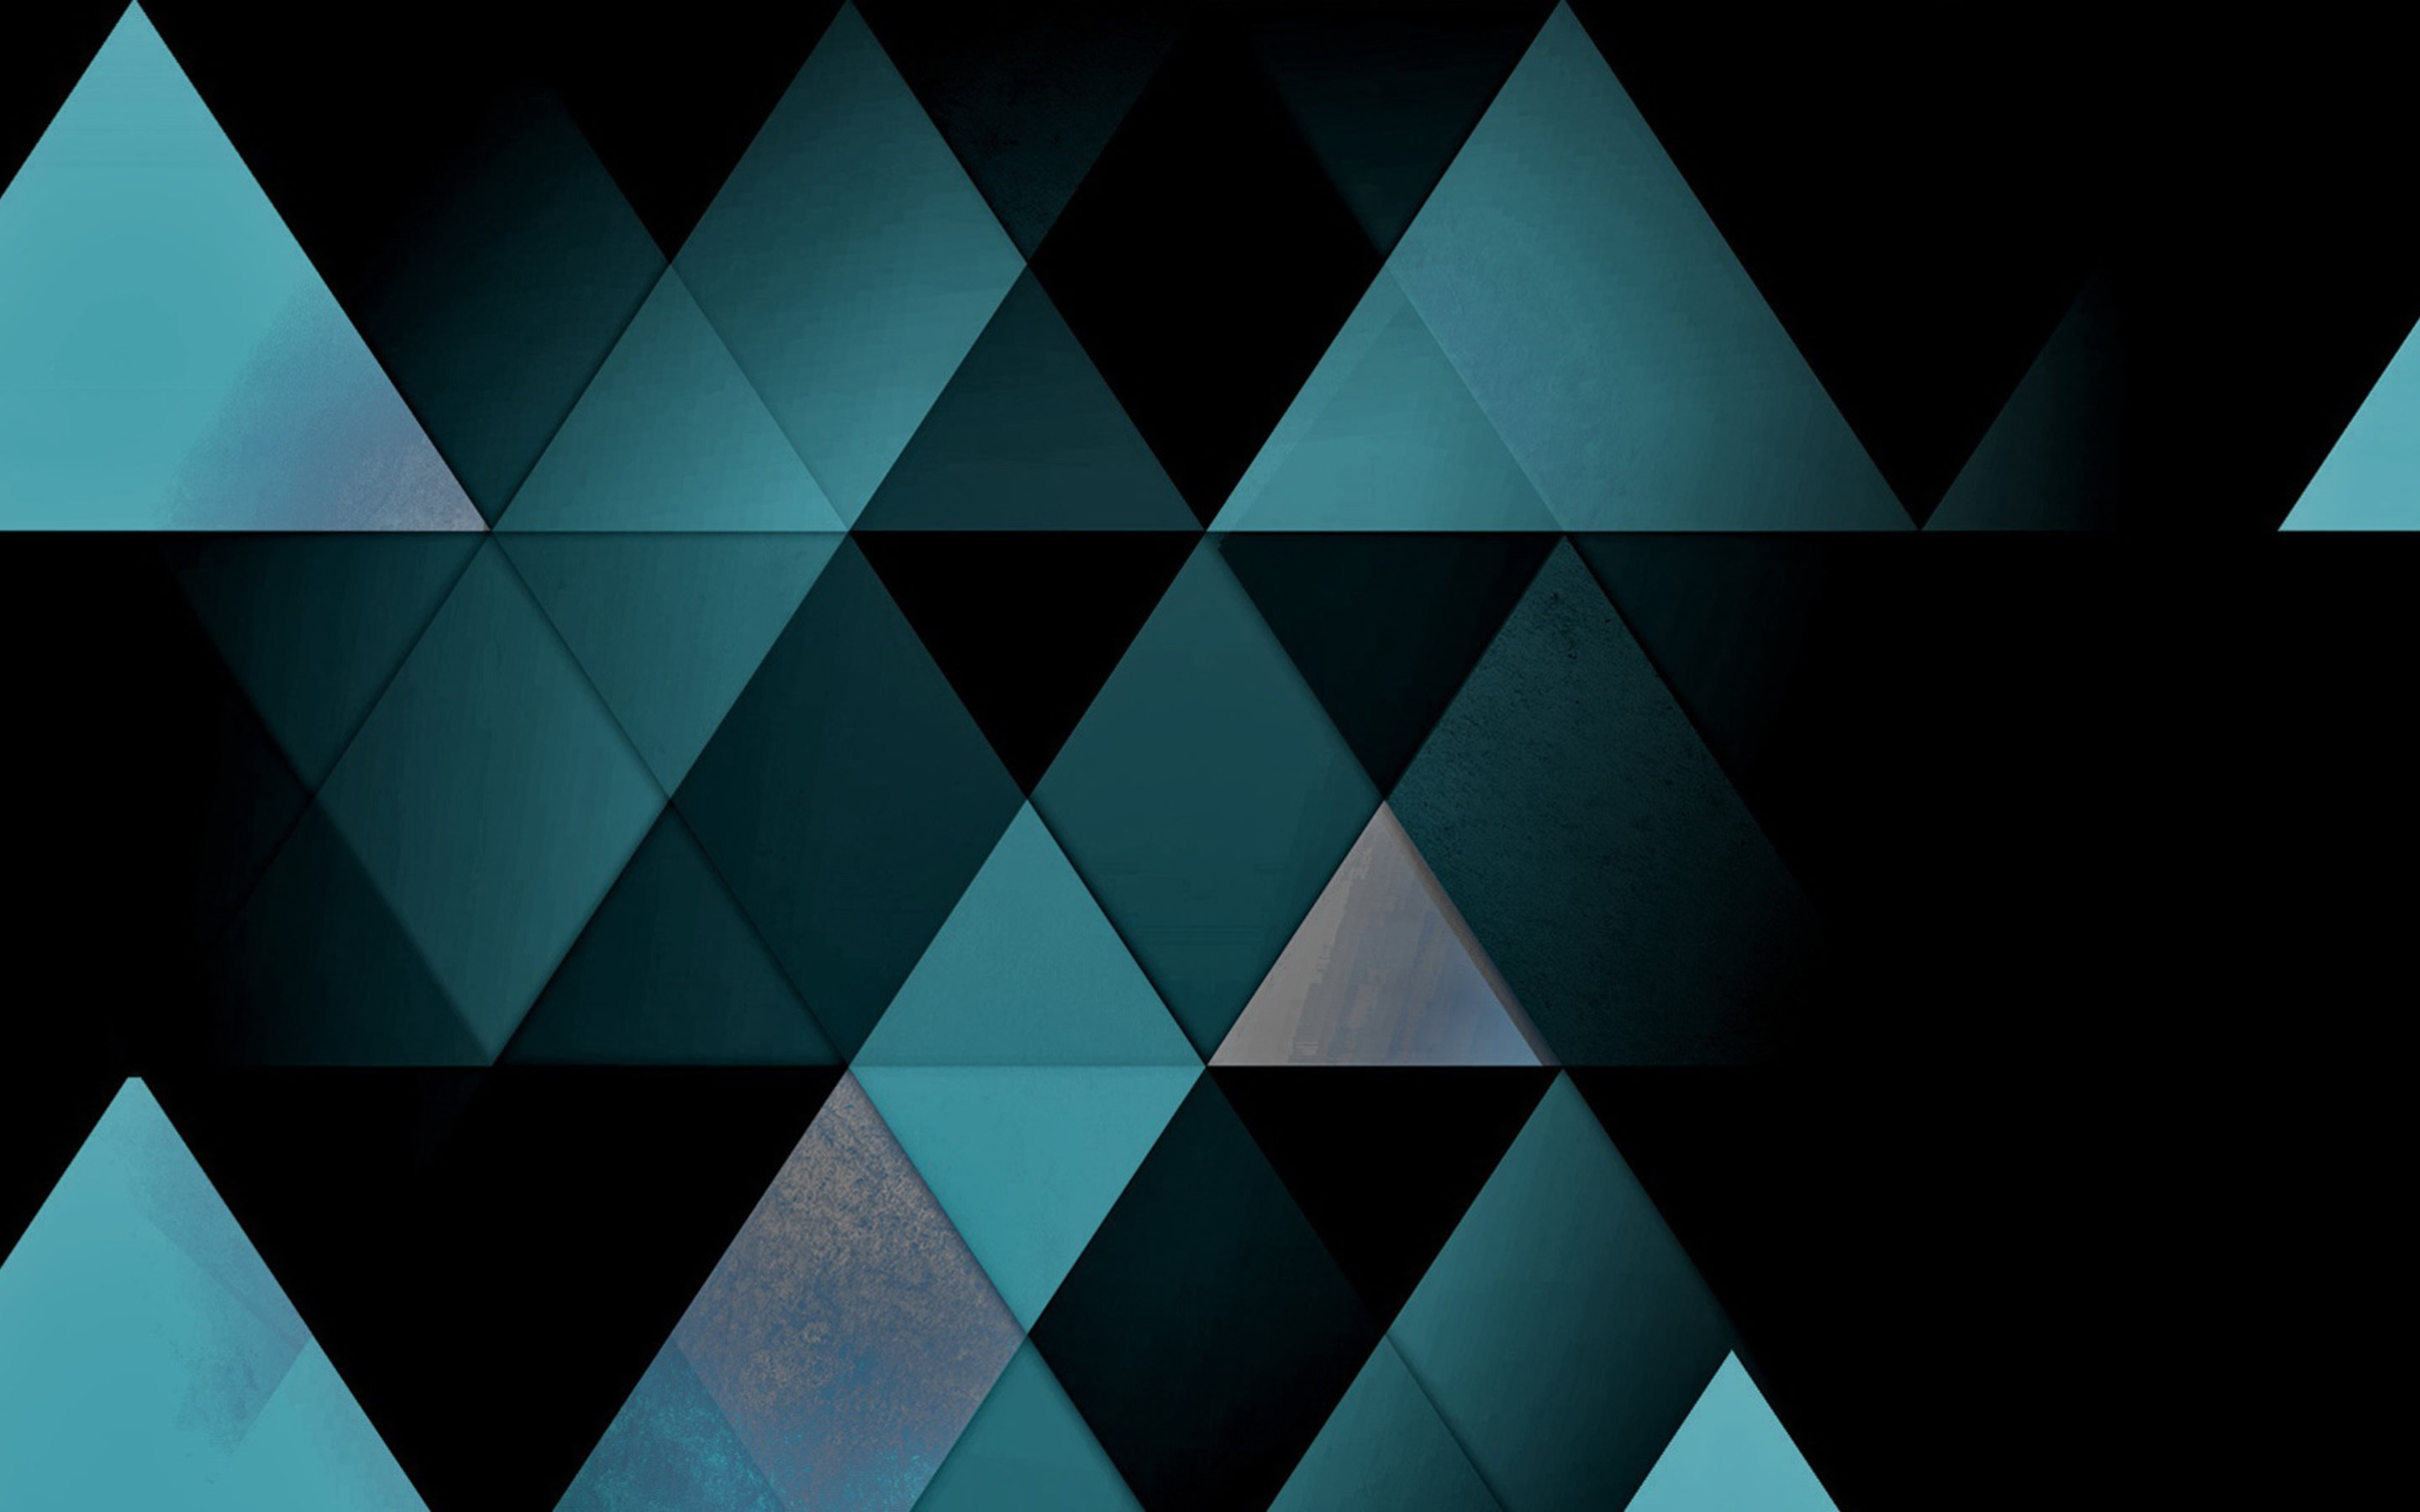 Geometric Wallpaper 6 2880x1800